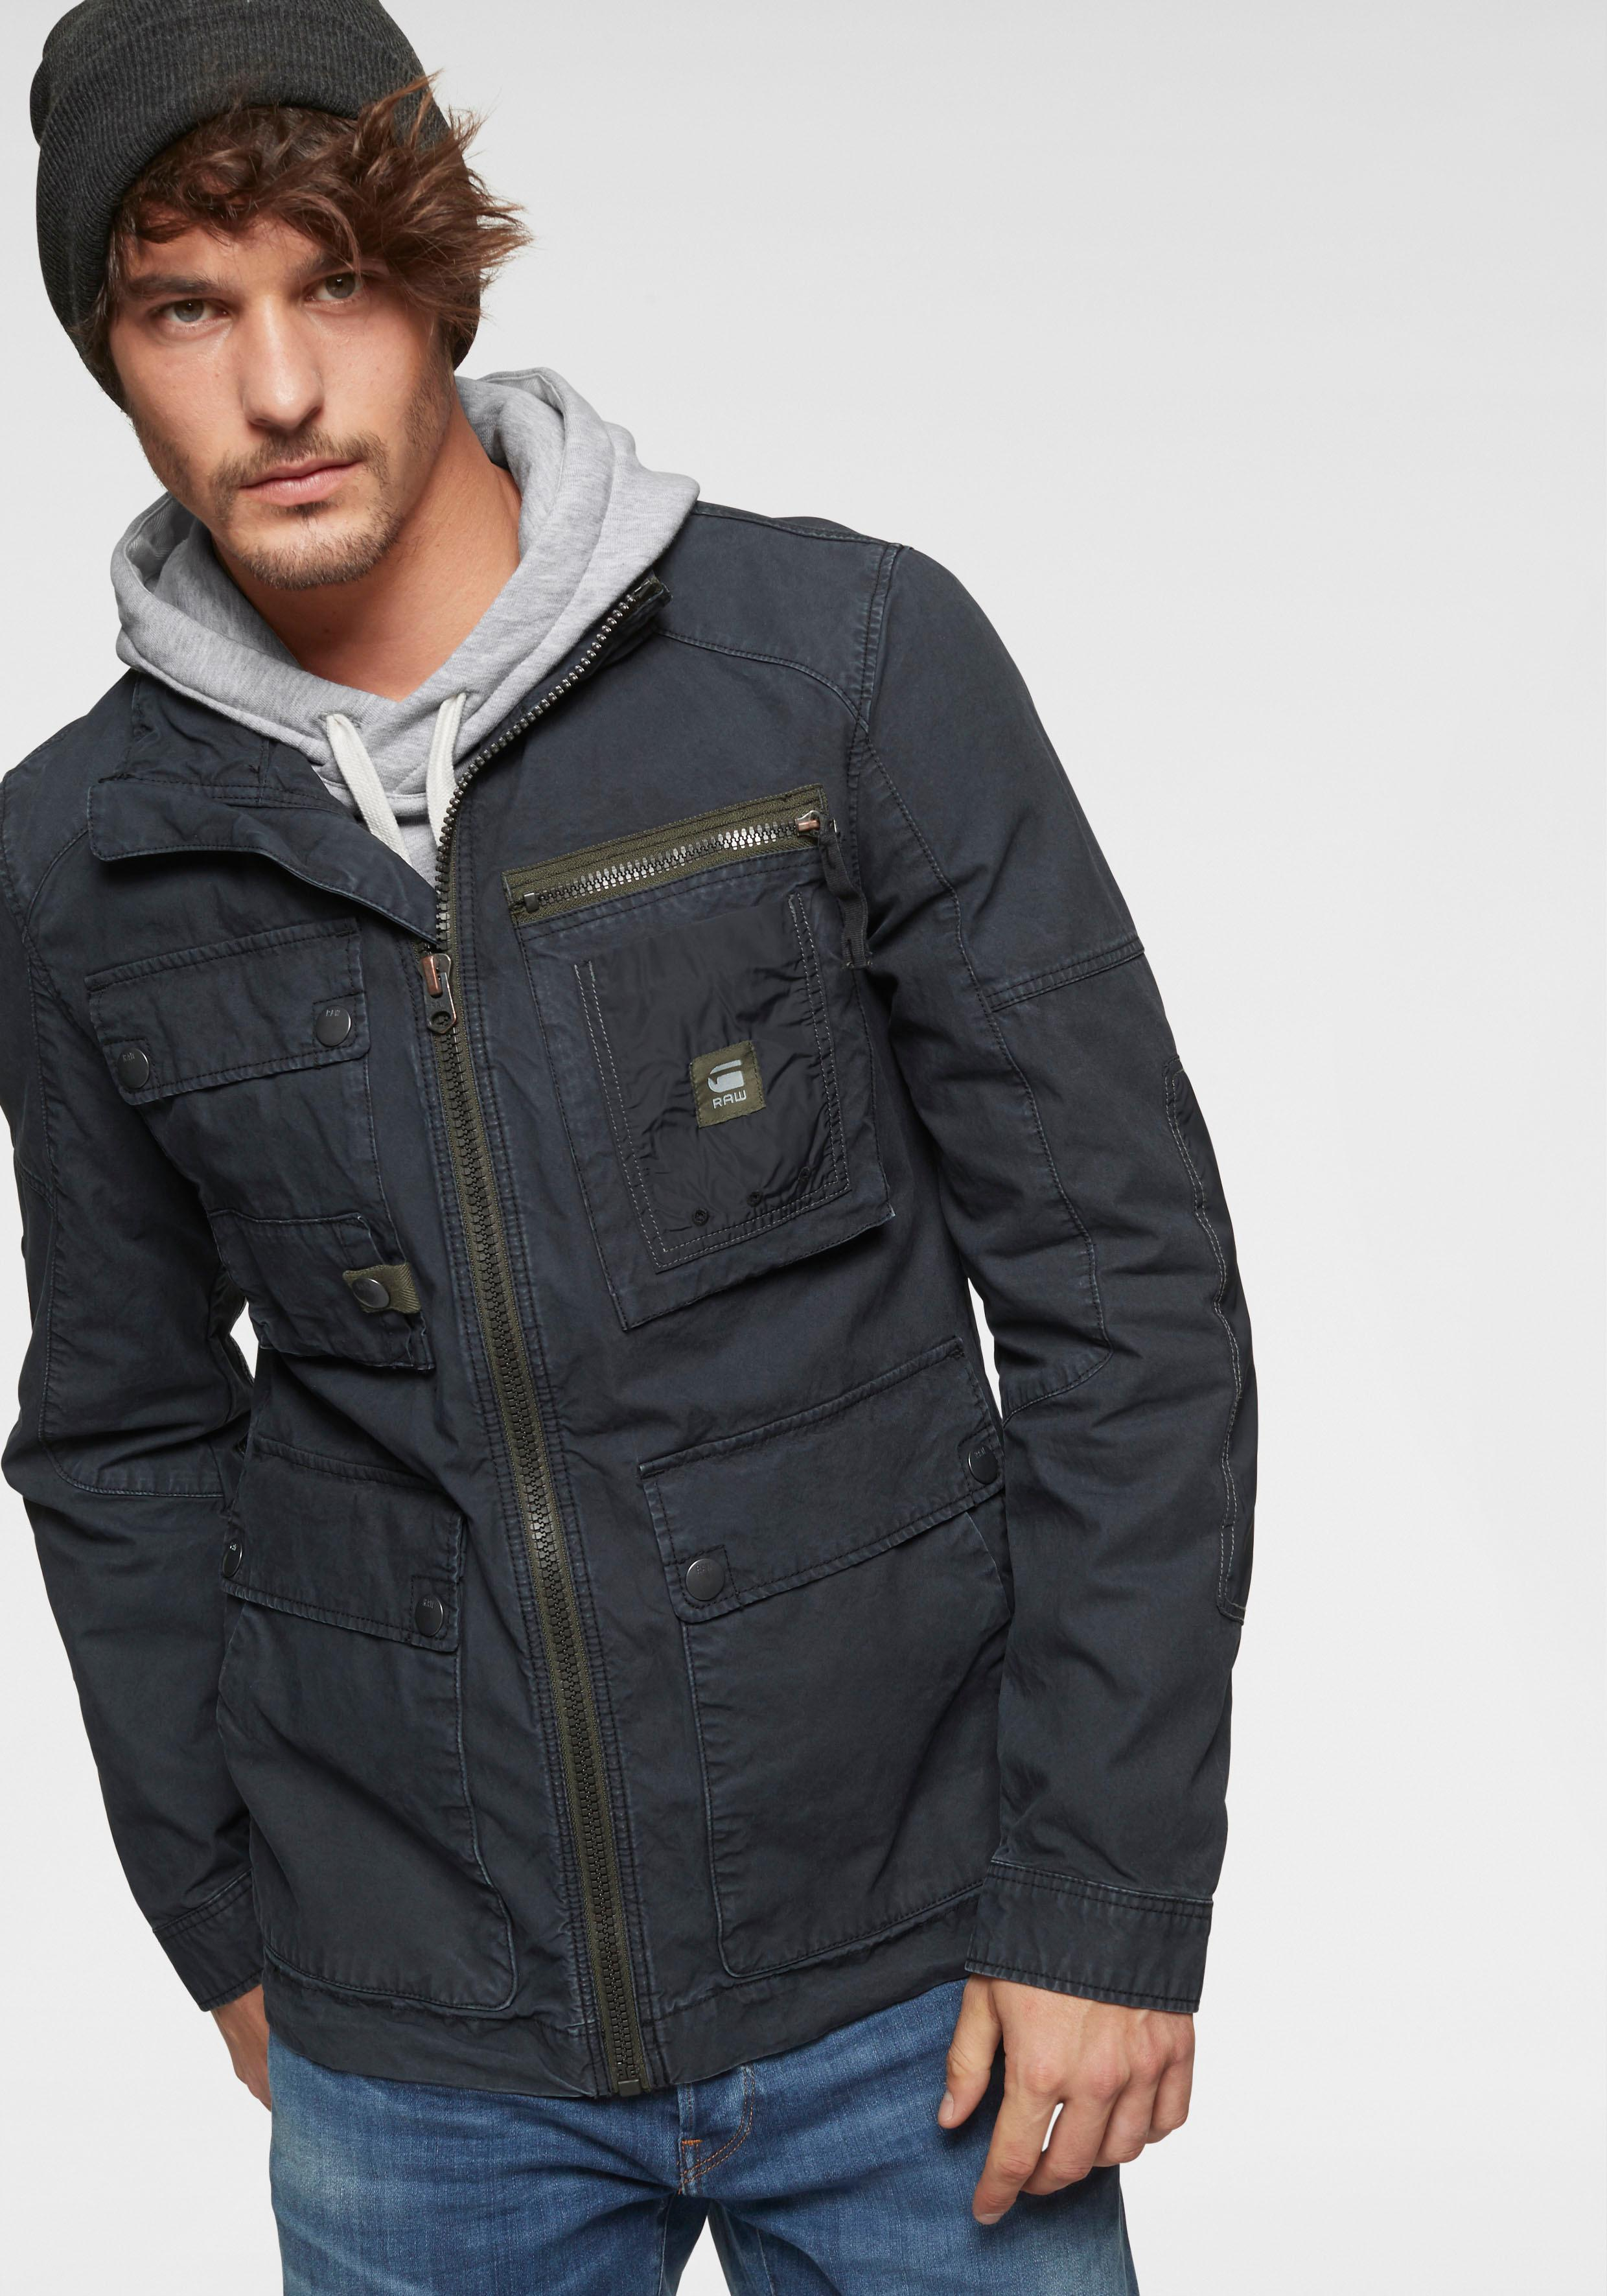 G-Star RAW Fieldjacket Grizzer Field Overshirt | Bekleidung > Jacken > Fieldjackets | Blau | G-Star Raw